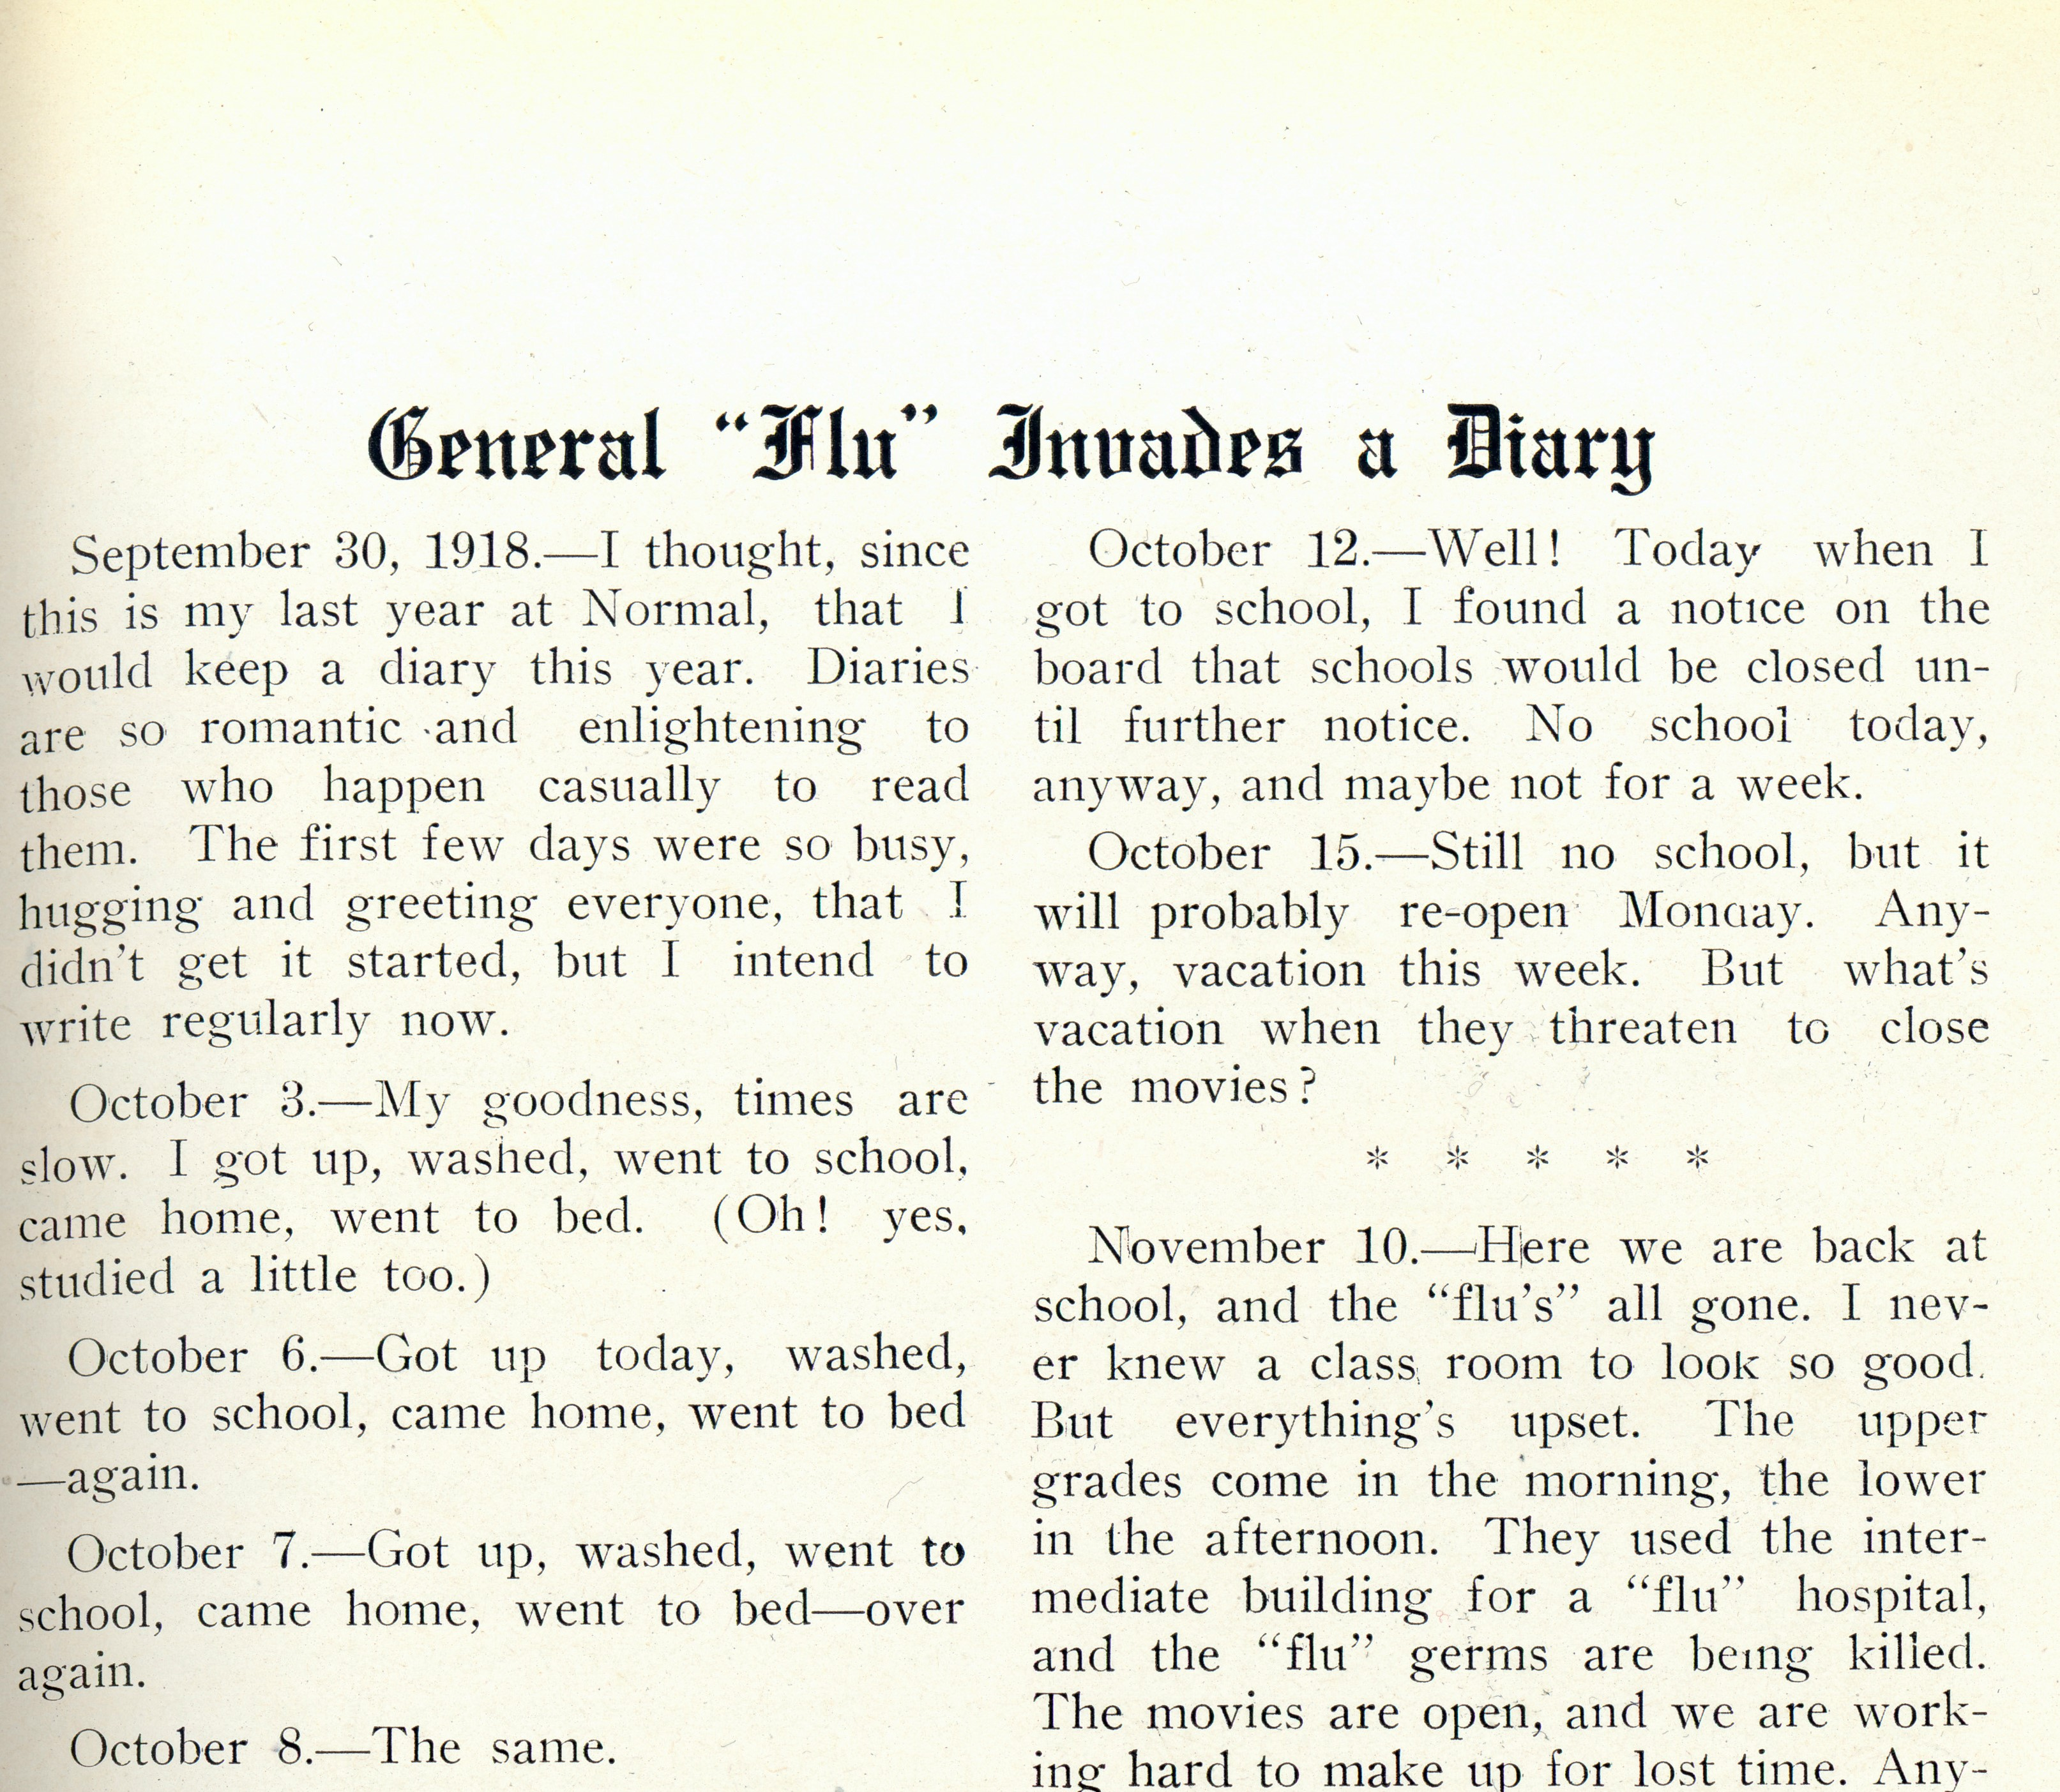 An excerpt of a page containing a reprint of a student's diary